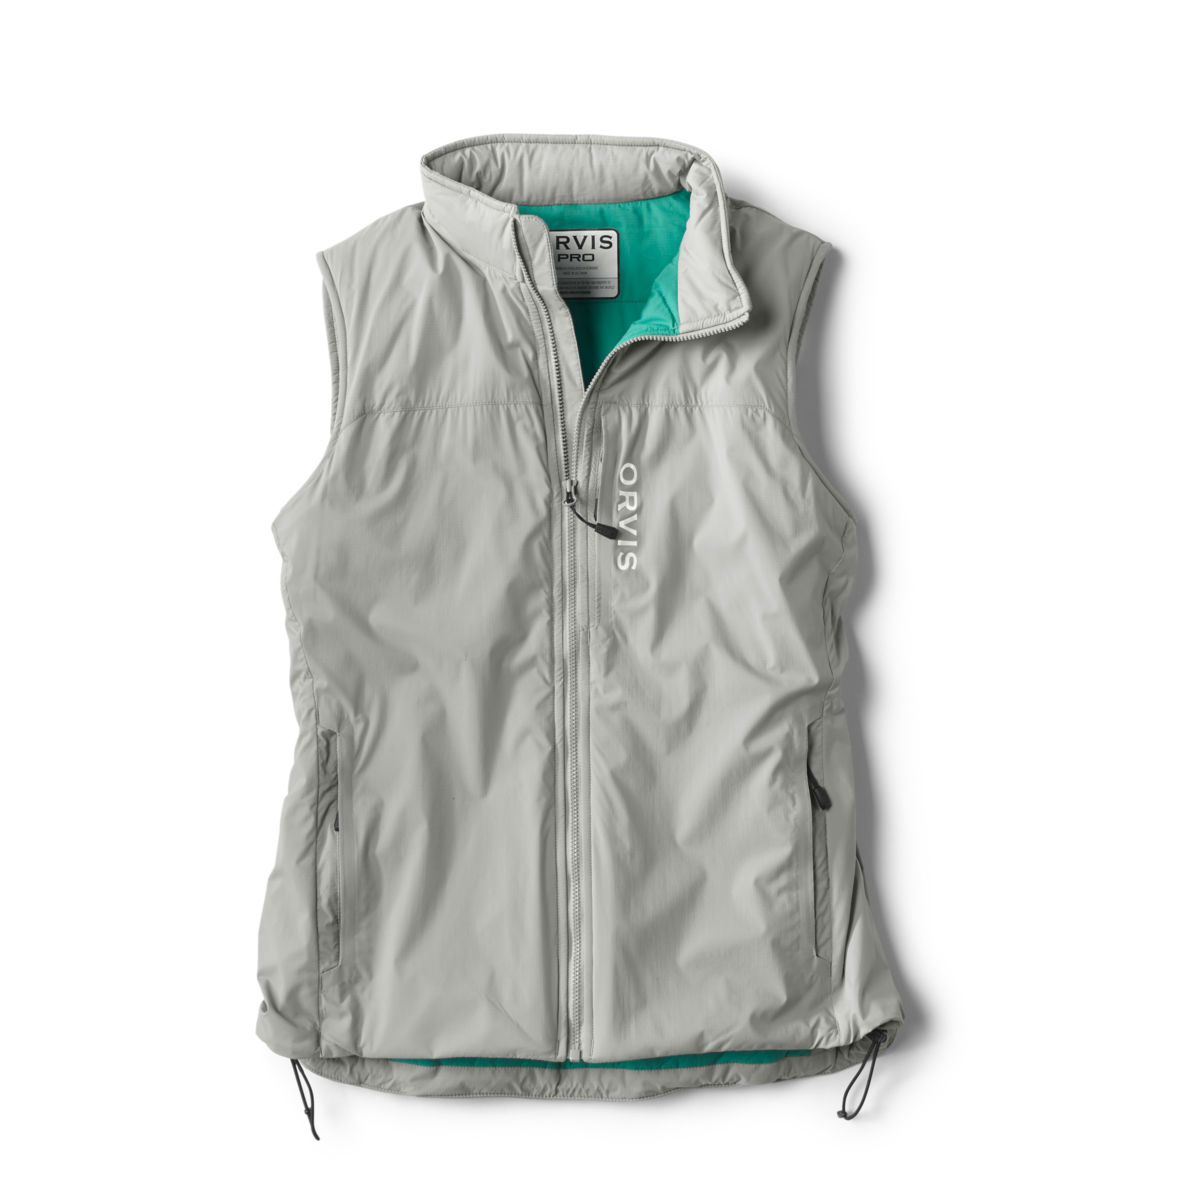 Women's PRO Insulated Vest - ALLOYimage number 0